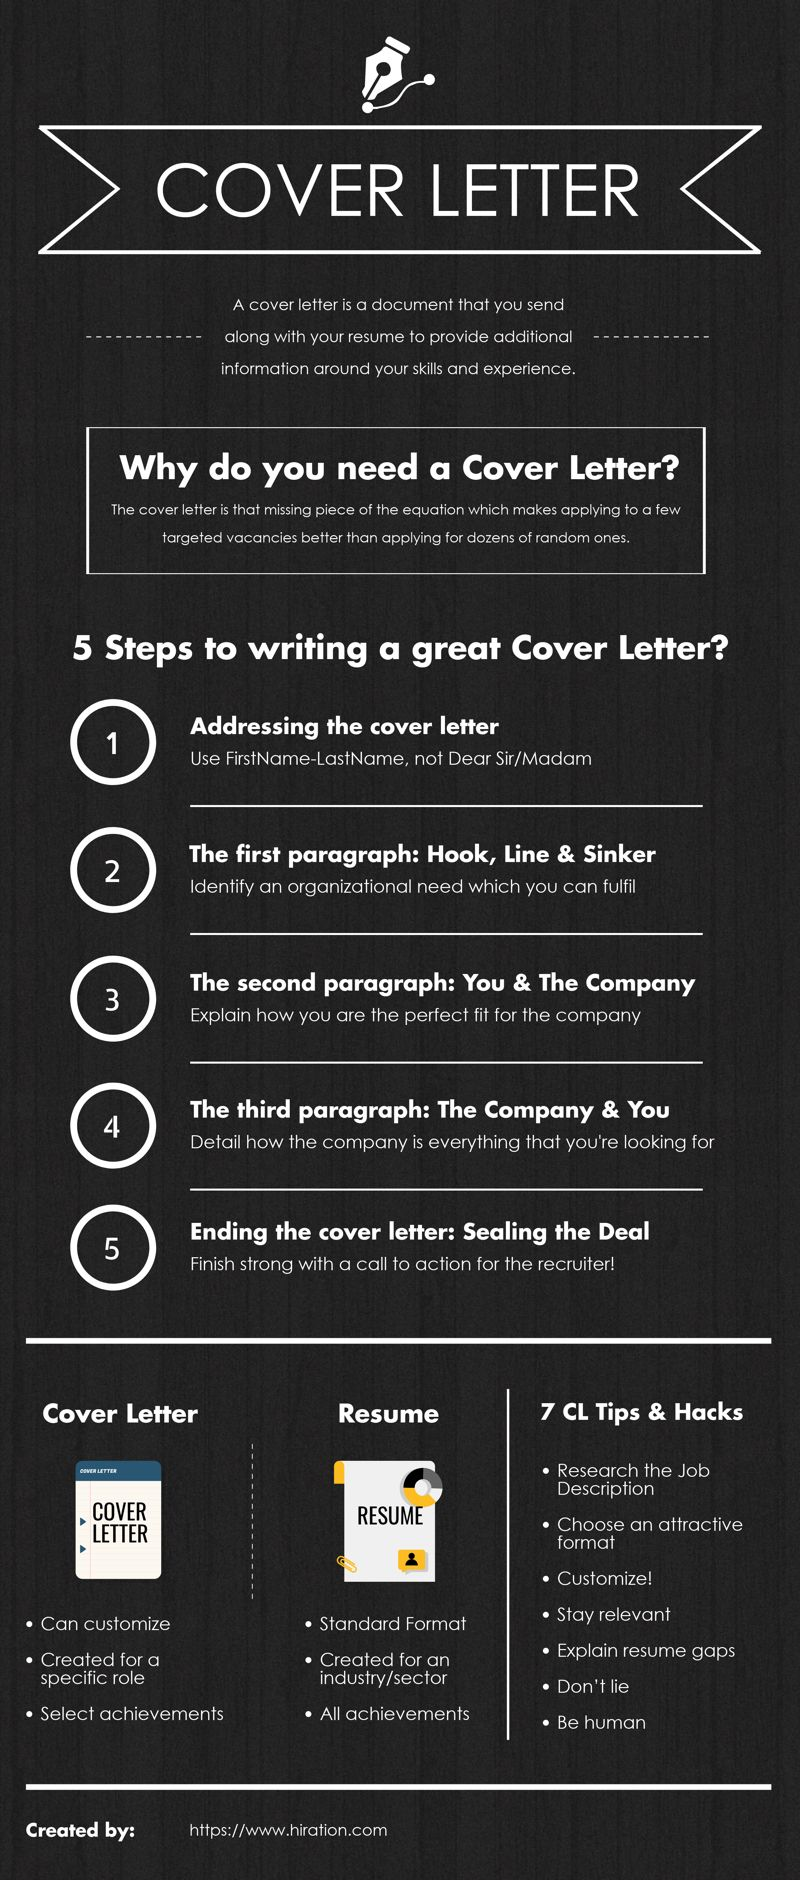 How to write a Cover Letter 2020 Guide with Examples